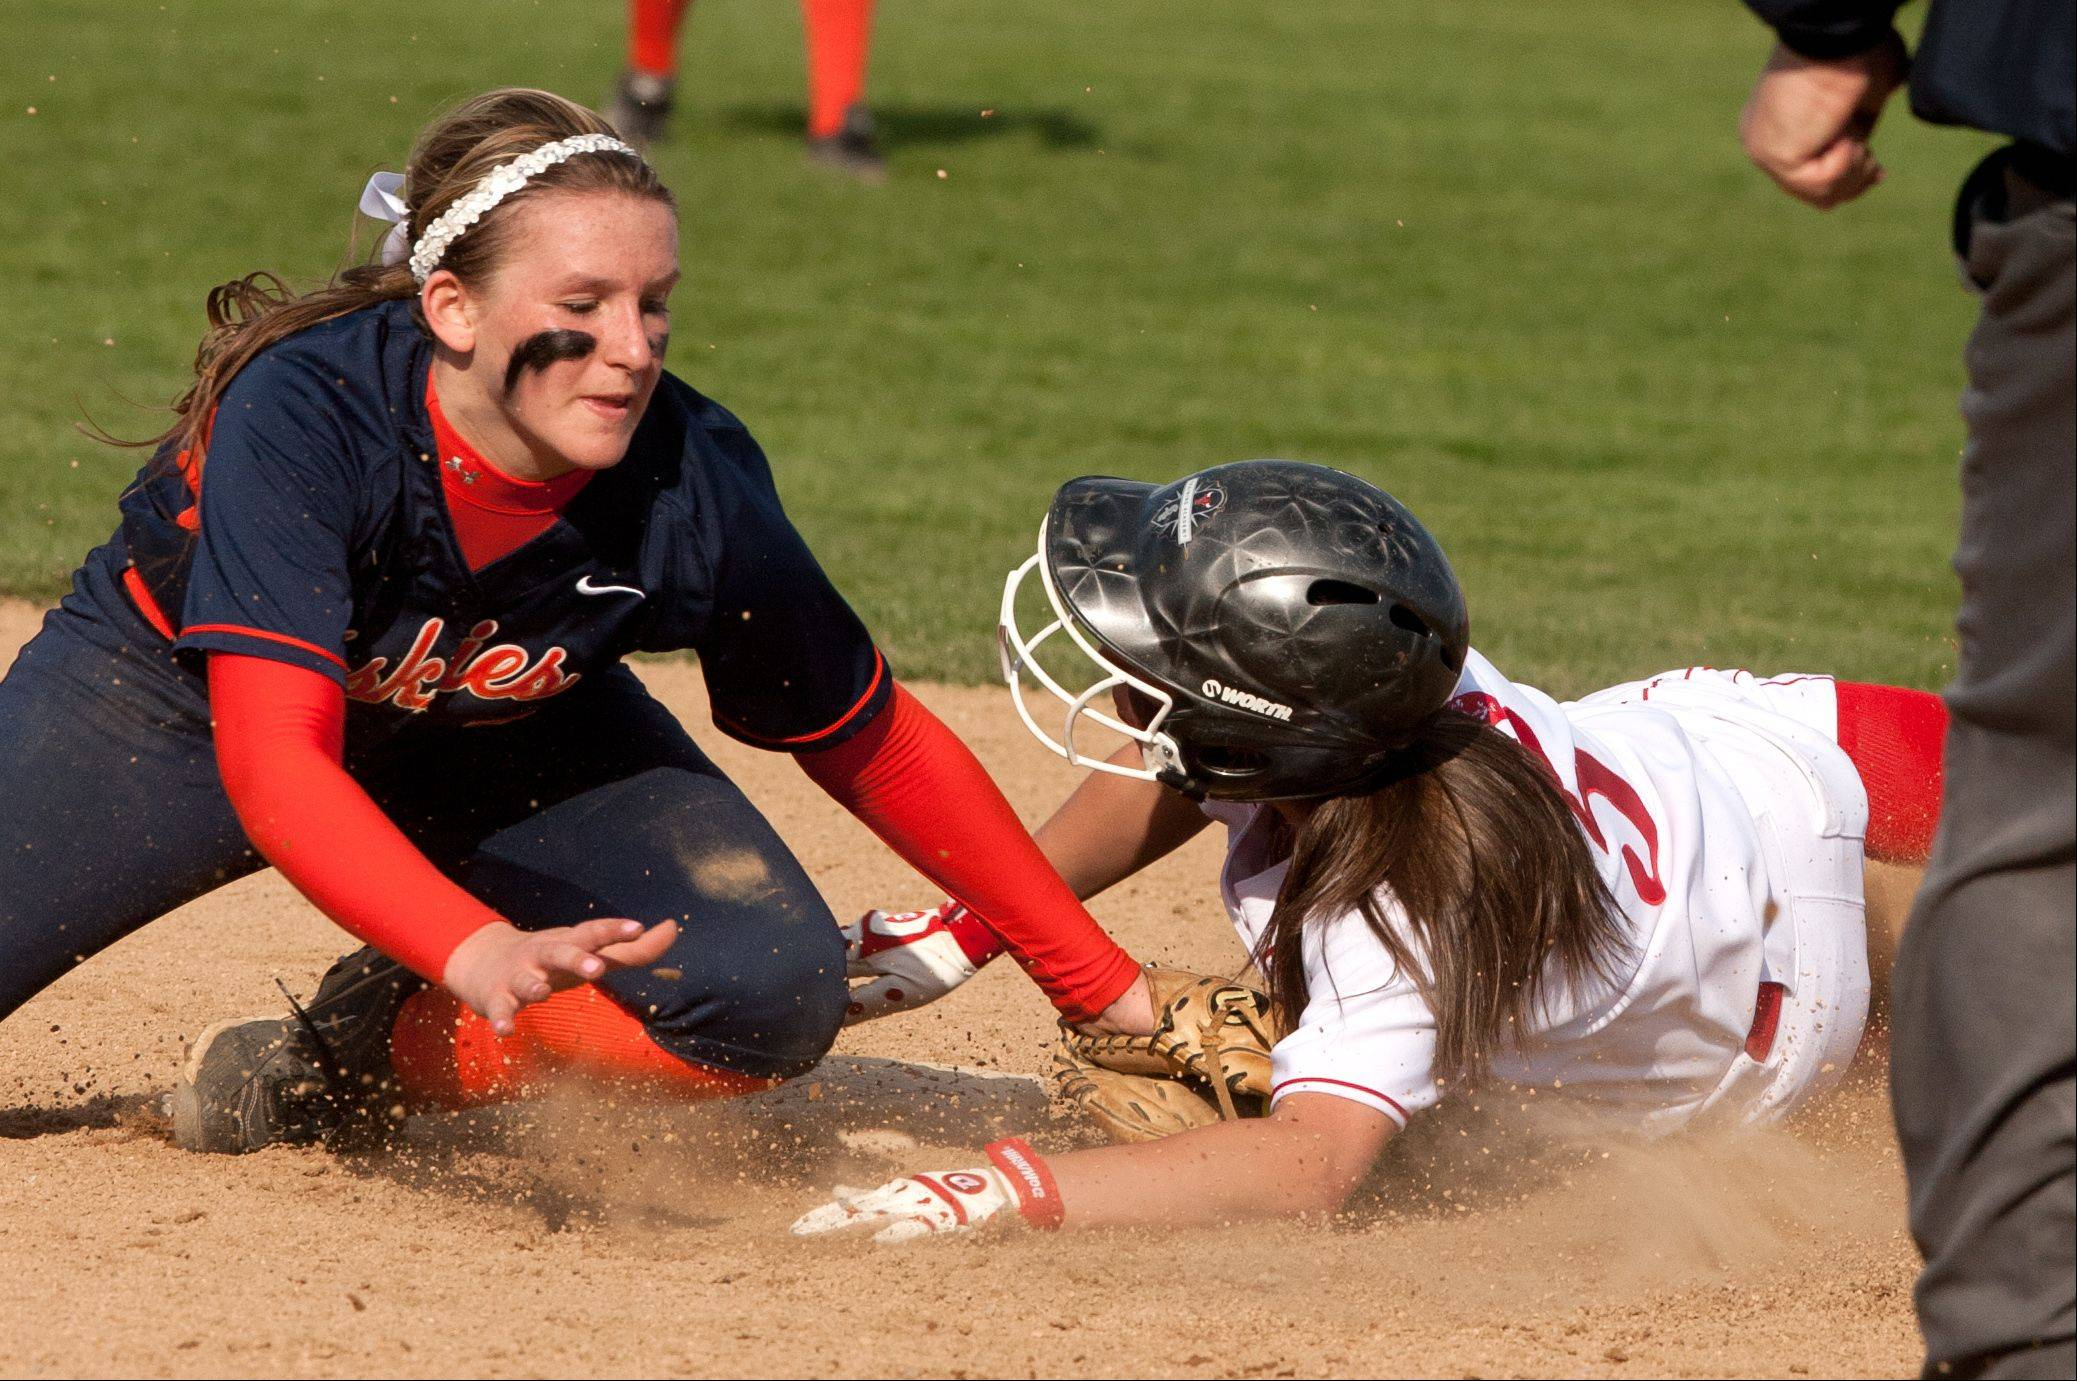 Daniel White/dwhite@dailyherald.comNaperville North's Alexis Solak, left, applies the tag to Naperville Central's Lindsey Gonzalez, who was called safe, during girls softball action.